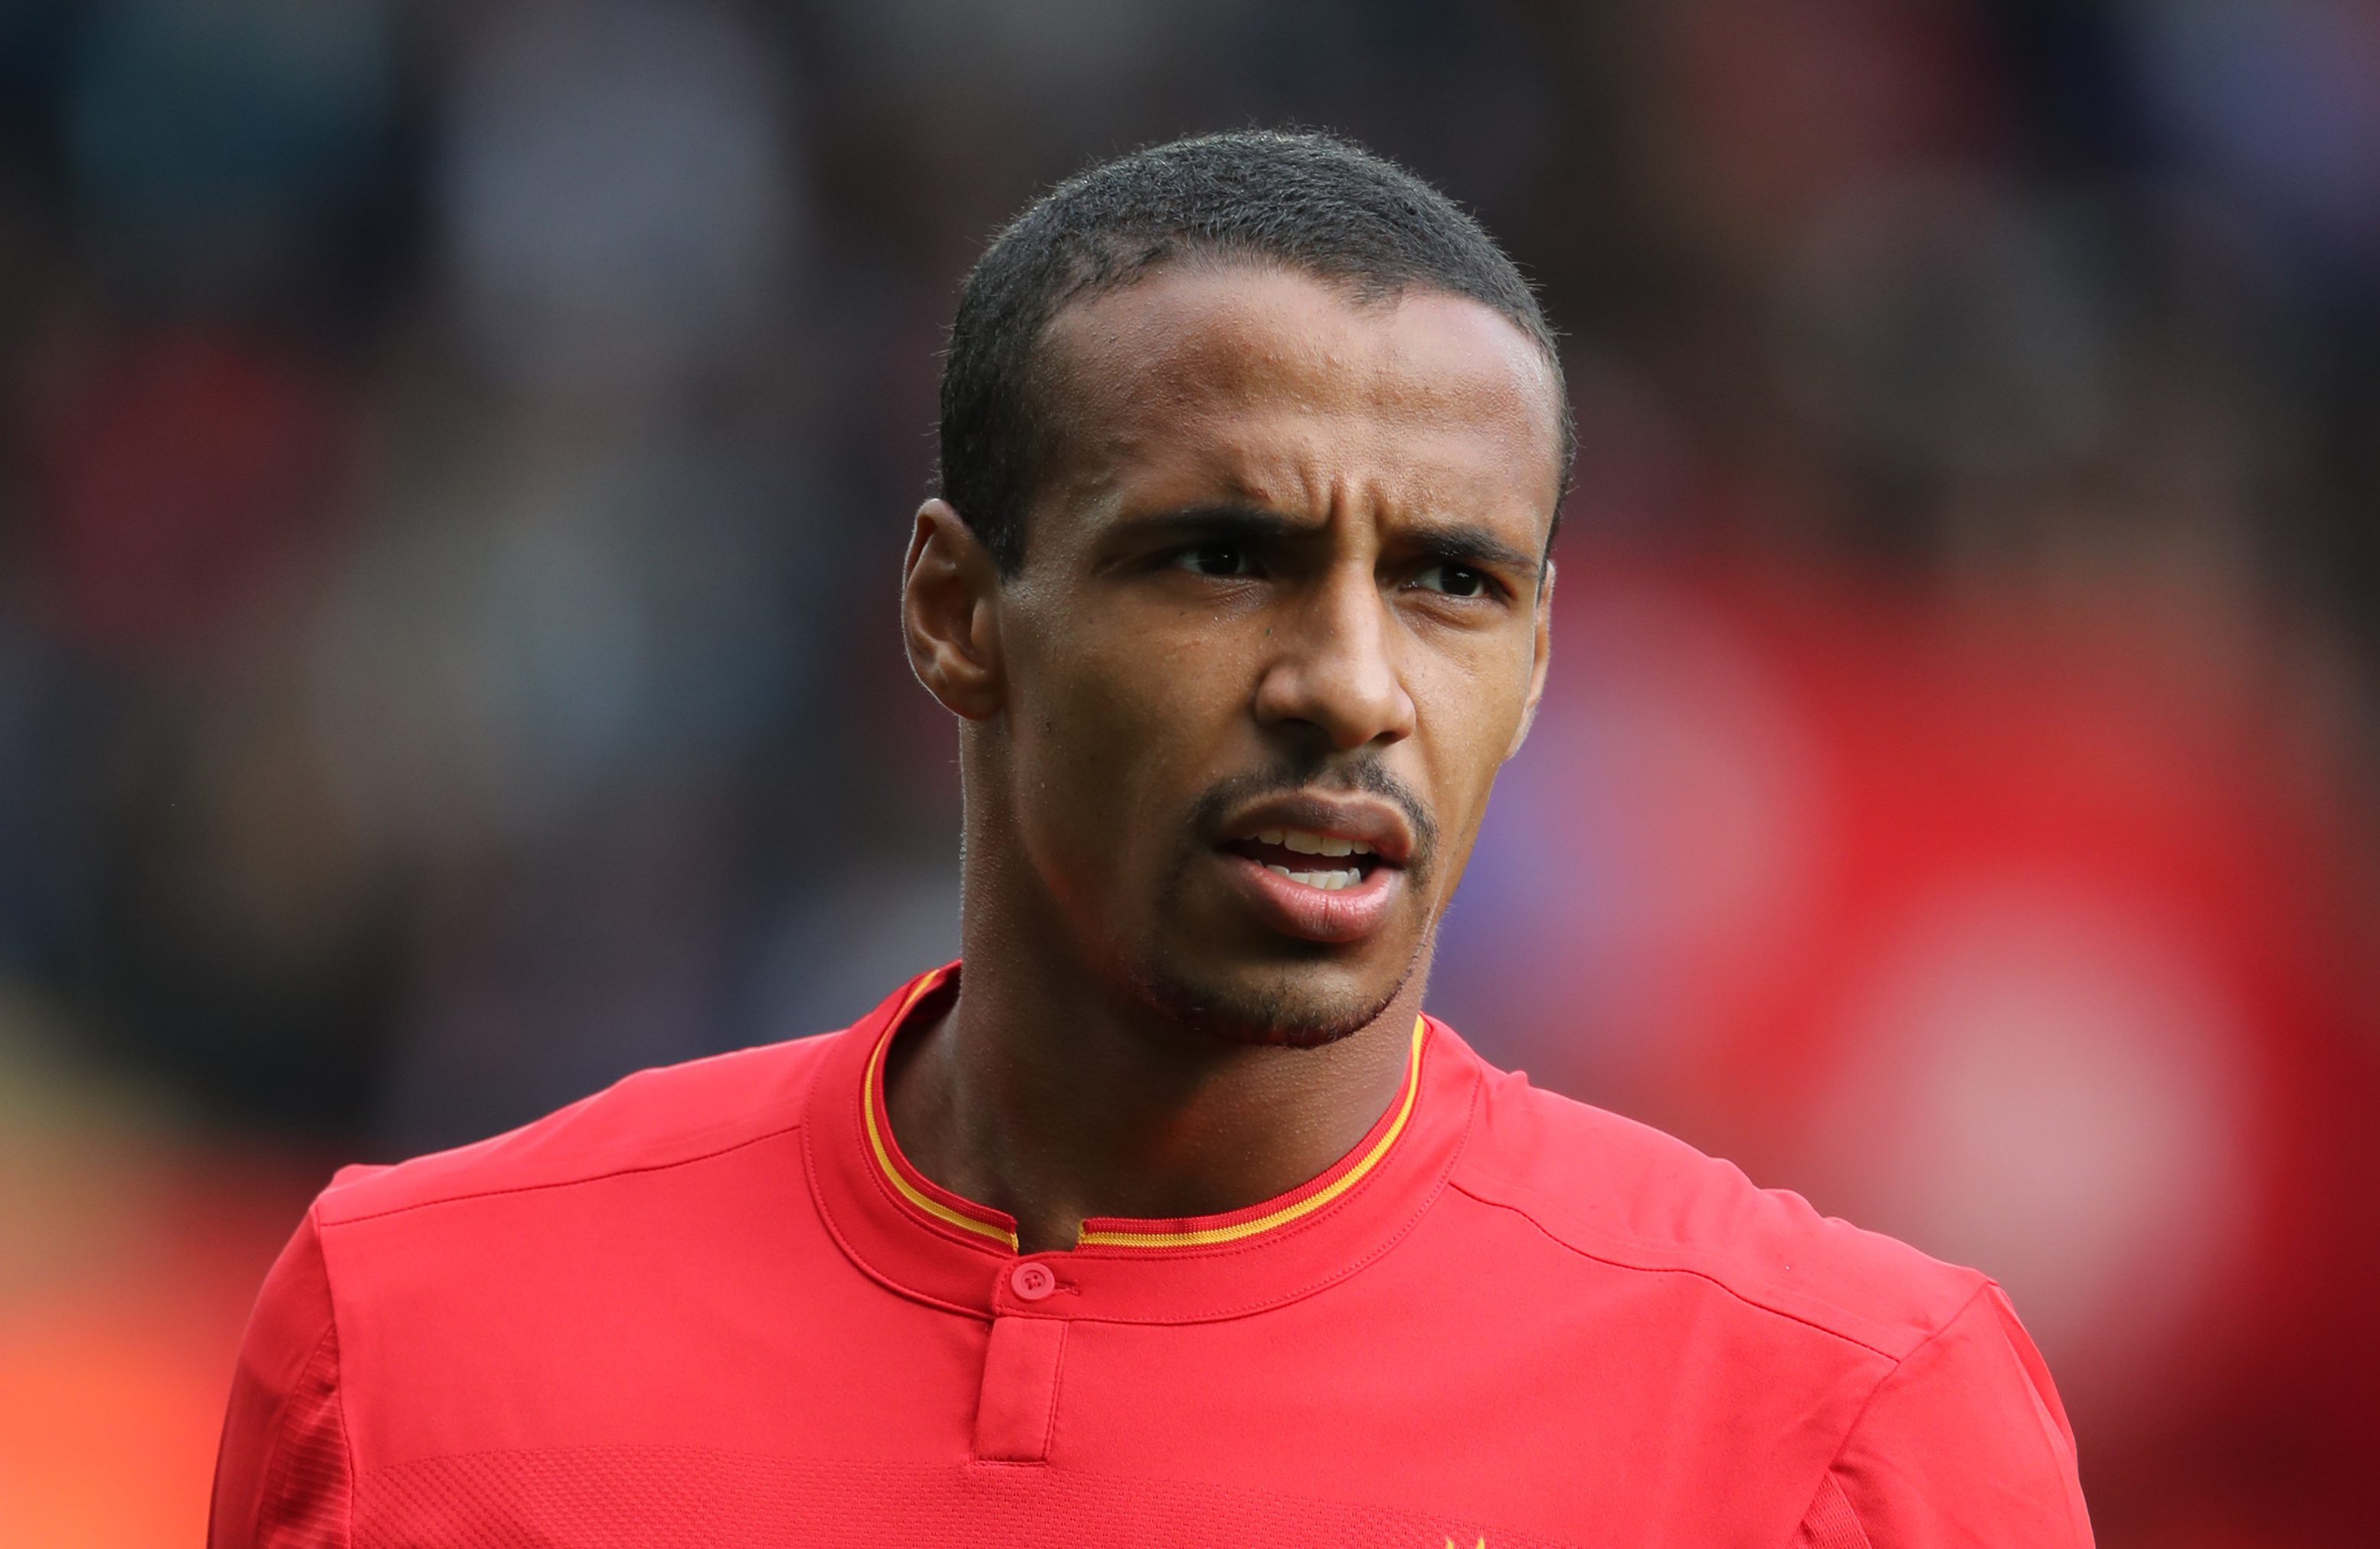 Cameroon boss aims dig at Liverpool's Joel Matip after Africa Cup of Nations victory